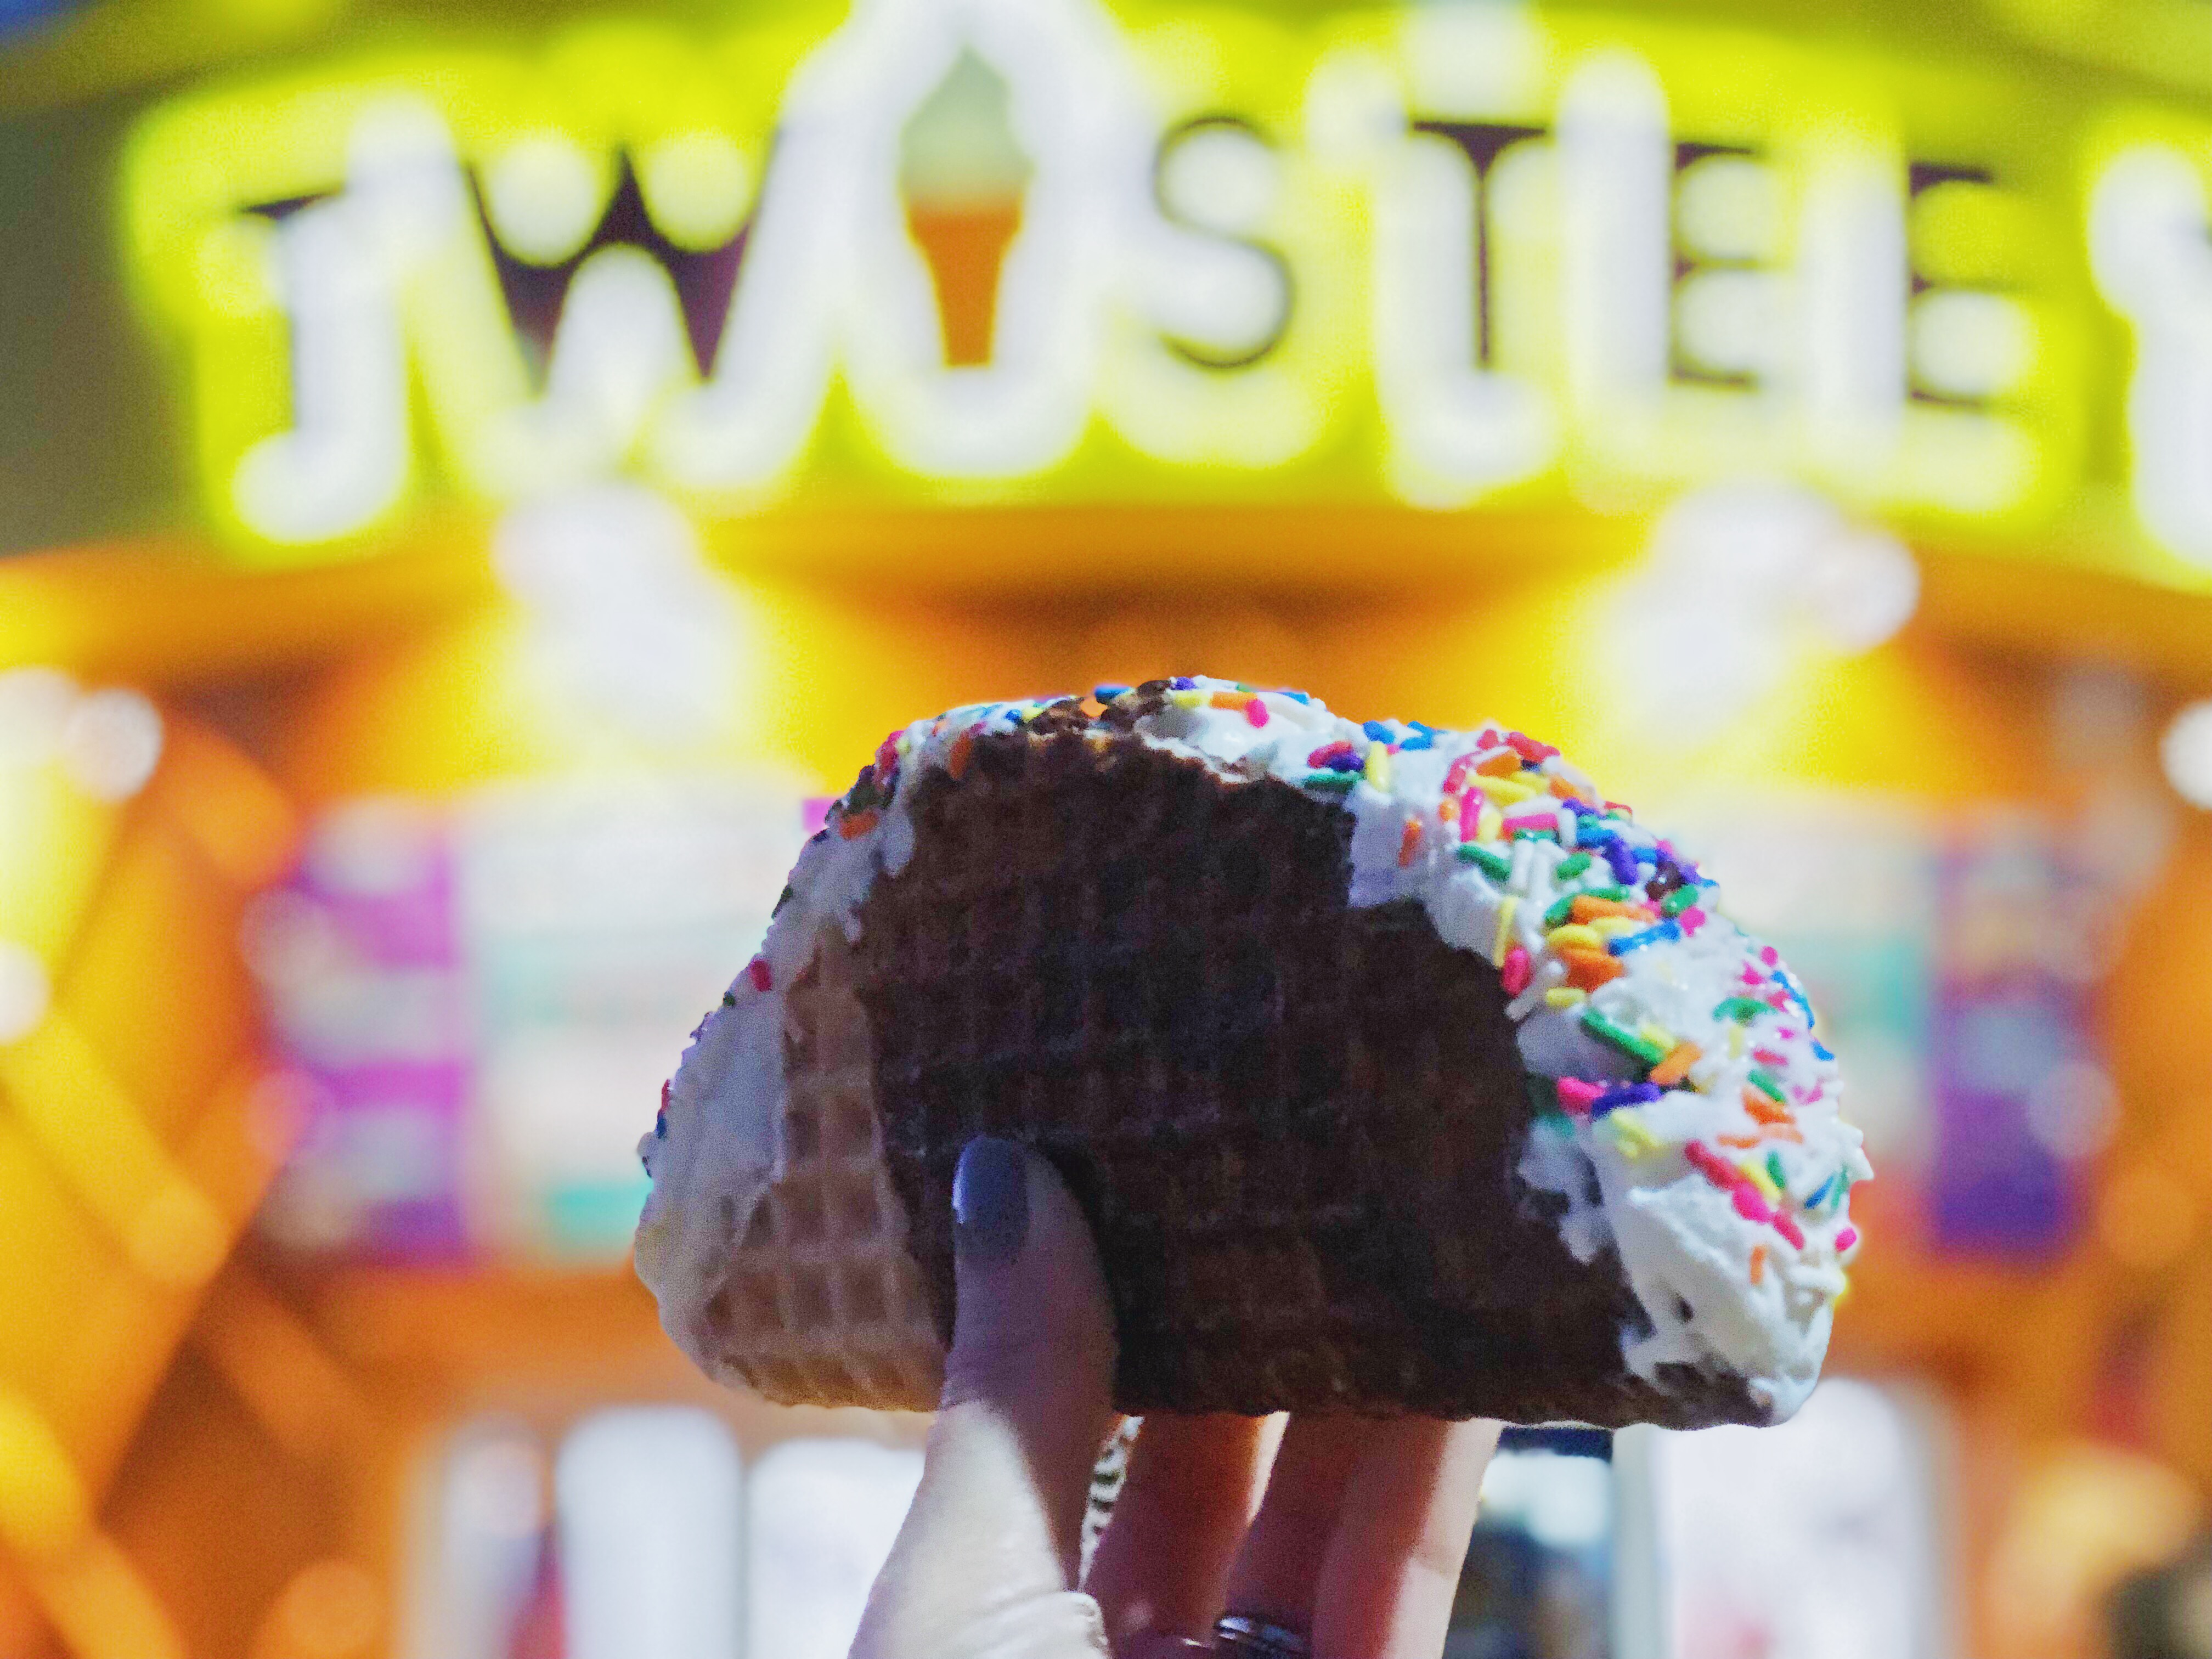 Ice Cream Taco from Twistee Treat